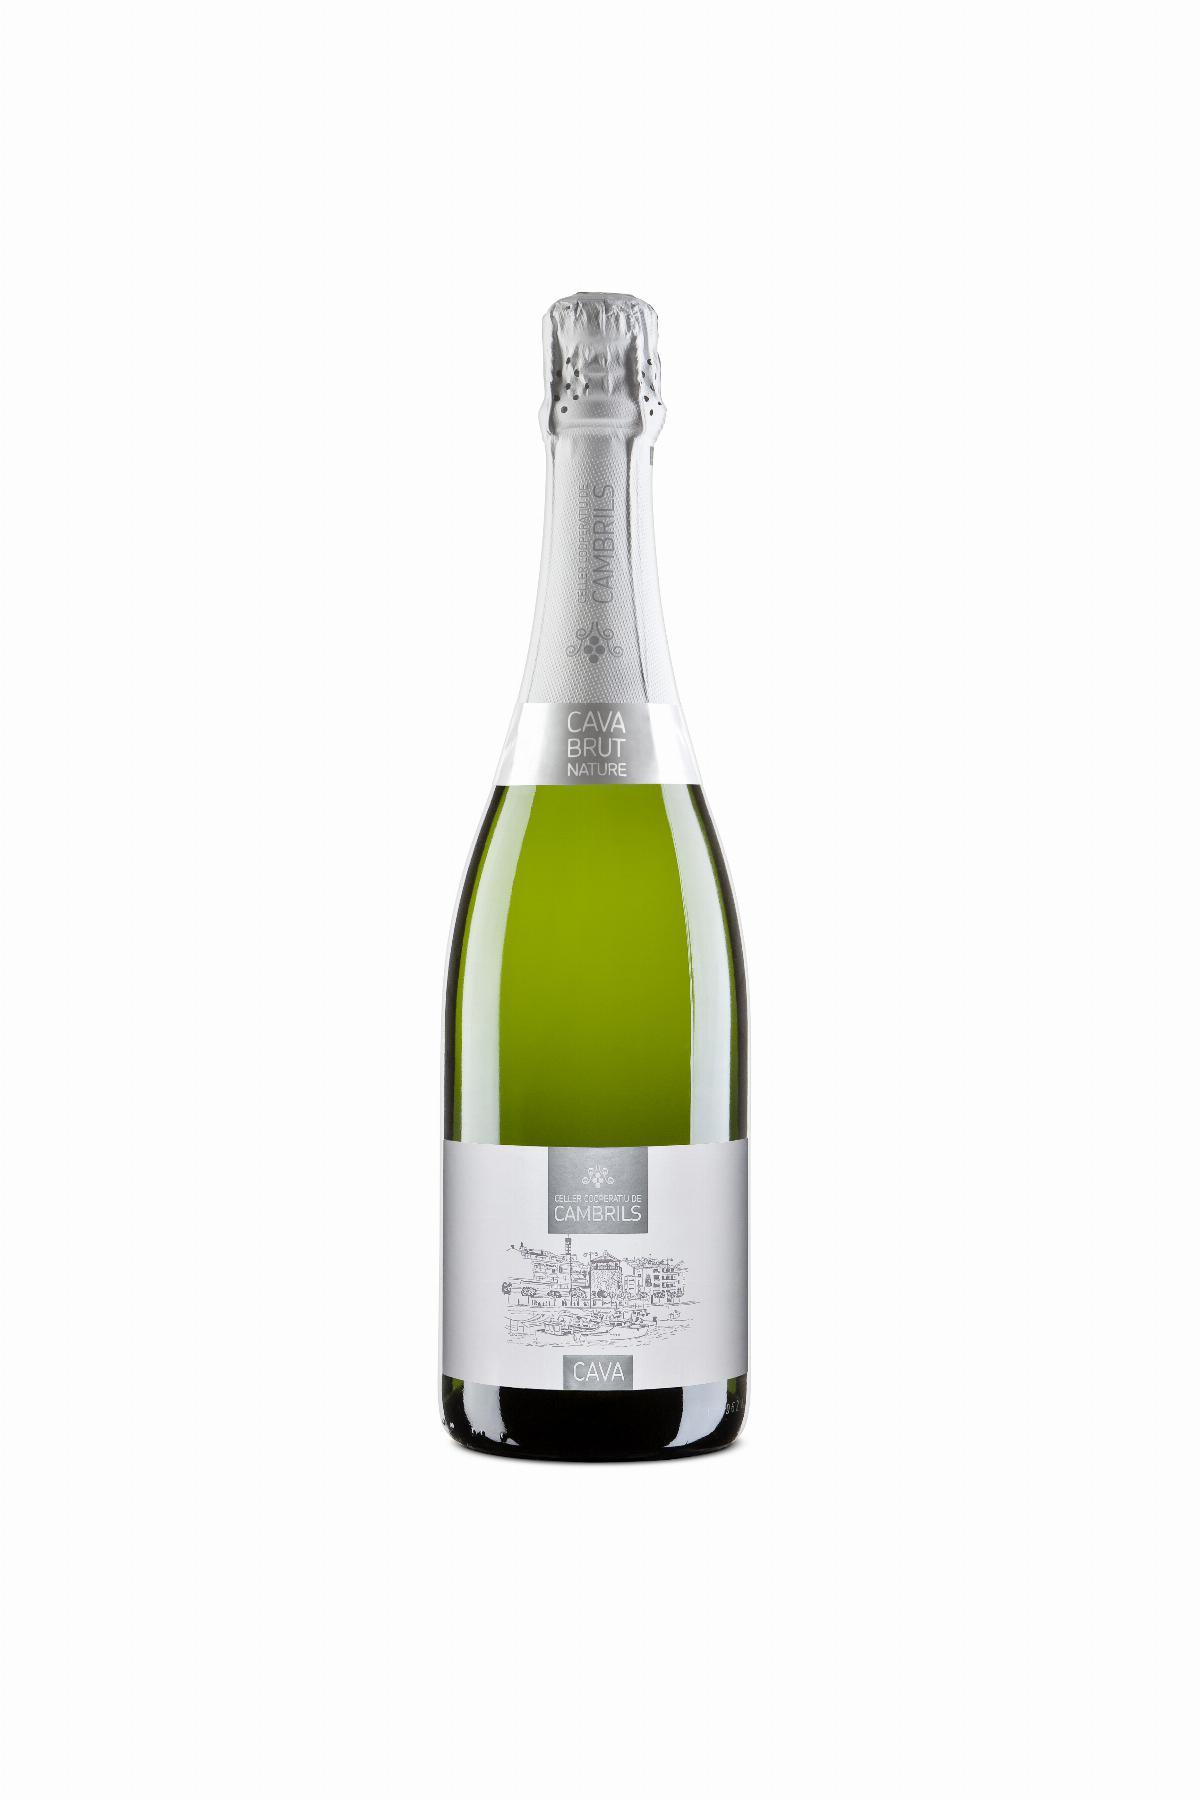 Cava Celler Cooperatiu Cambrils Brut-Nature, 750ml, CAT